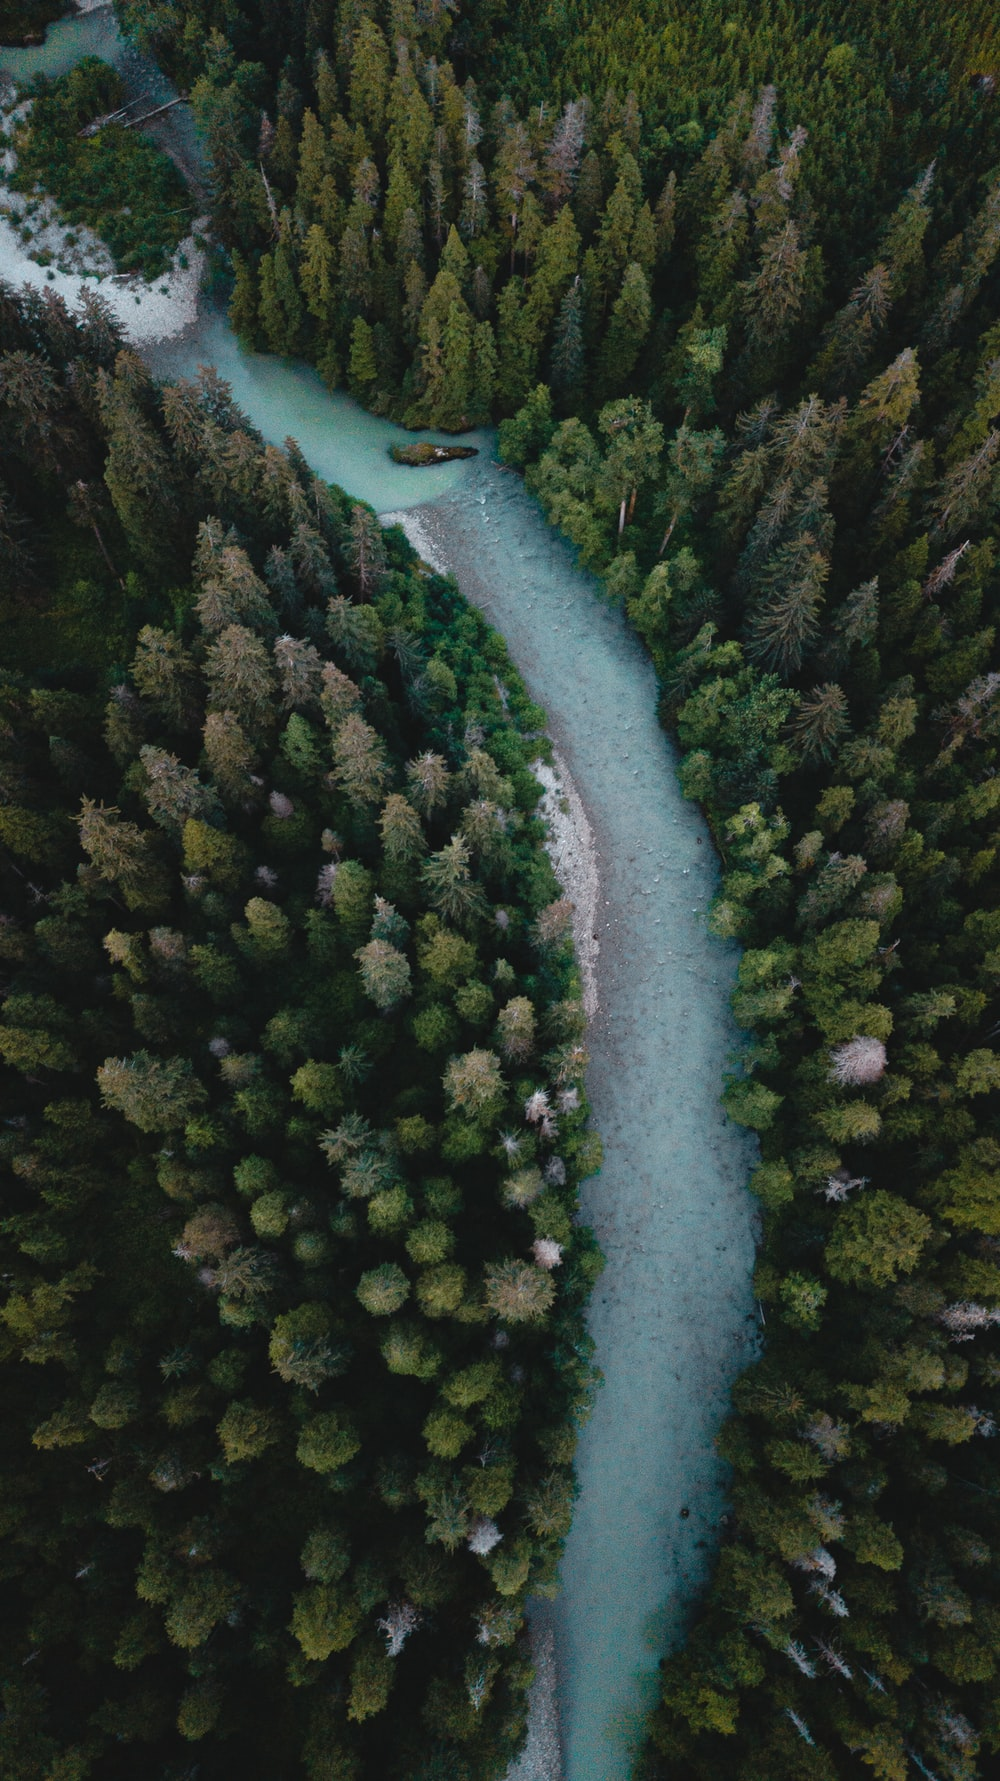 aerial view of river in between green trees during daytime